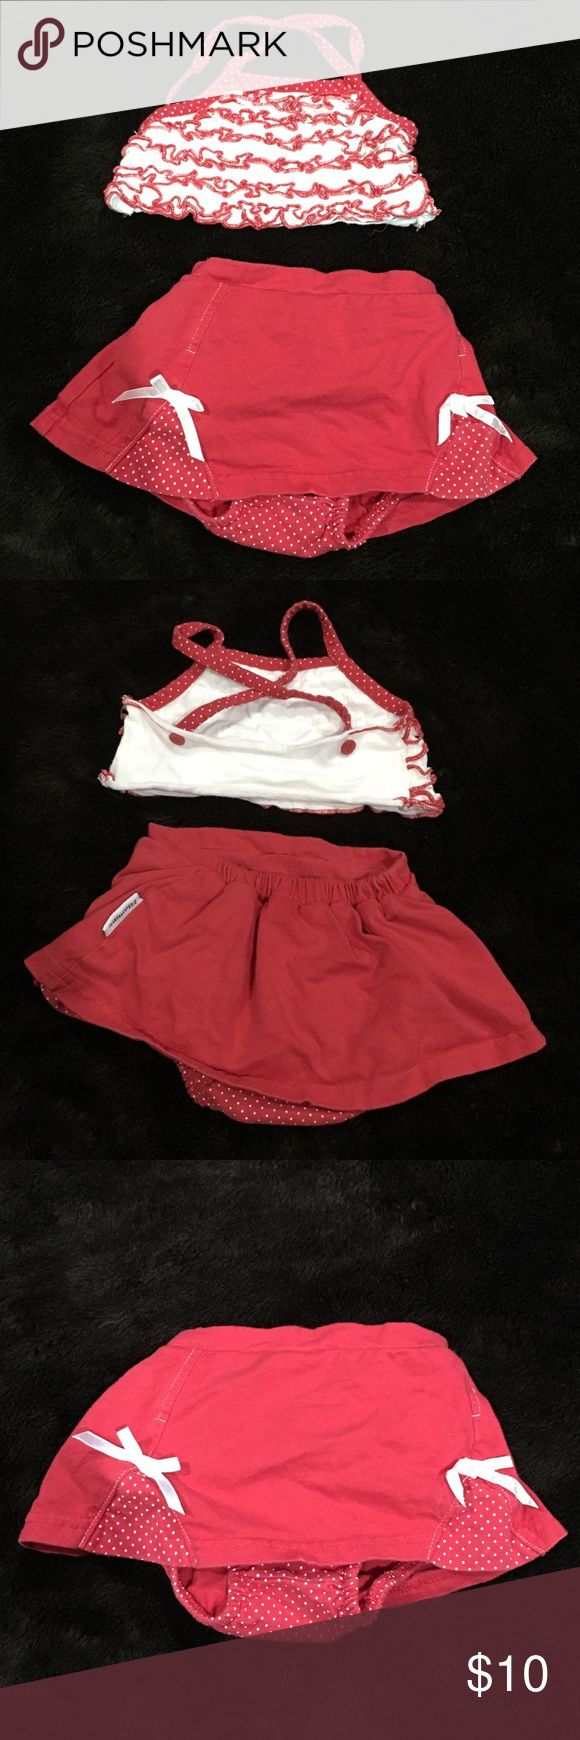 Vitamin kids 2 piece swimsuit Red two piece skirt bottom and ruffle top swimsuit. I purchased this second hand as a swimsuit but fabric is cotton instead of a swimsuit material which I strange to me. Either way it's in GUC and is super super cute with minimal wear. Vitamins Baby Swim Bikinis